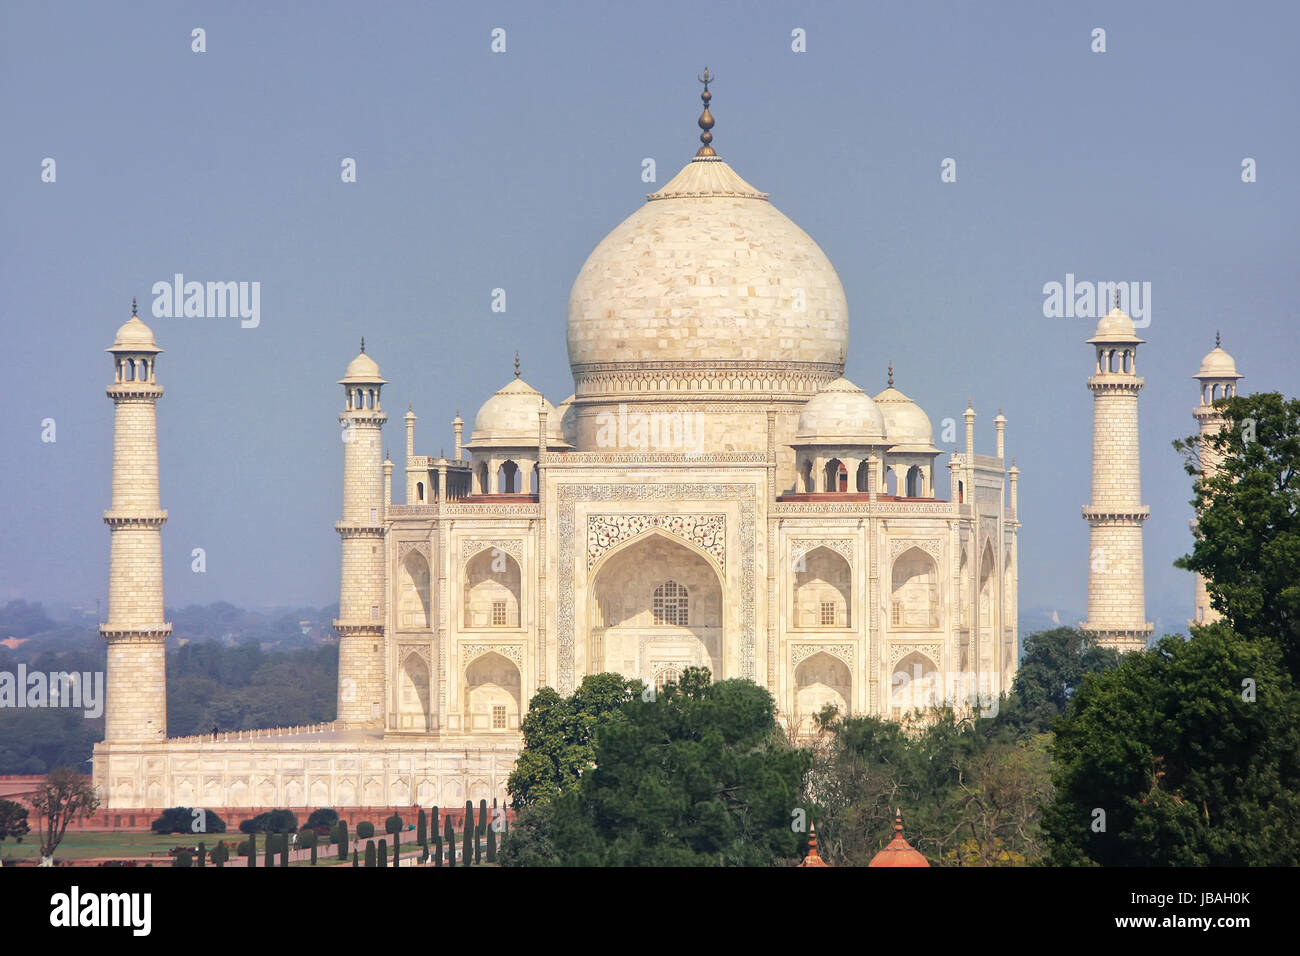 View of Taj Mahal in Agra, Uttar Pradesh, India. It was build in 1632 by Emperor Shah Jahan as a memorial for his - Stock Image